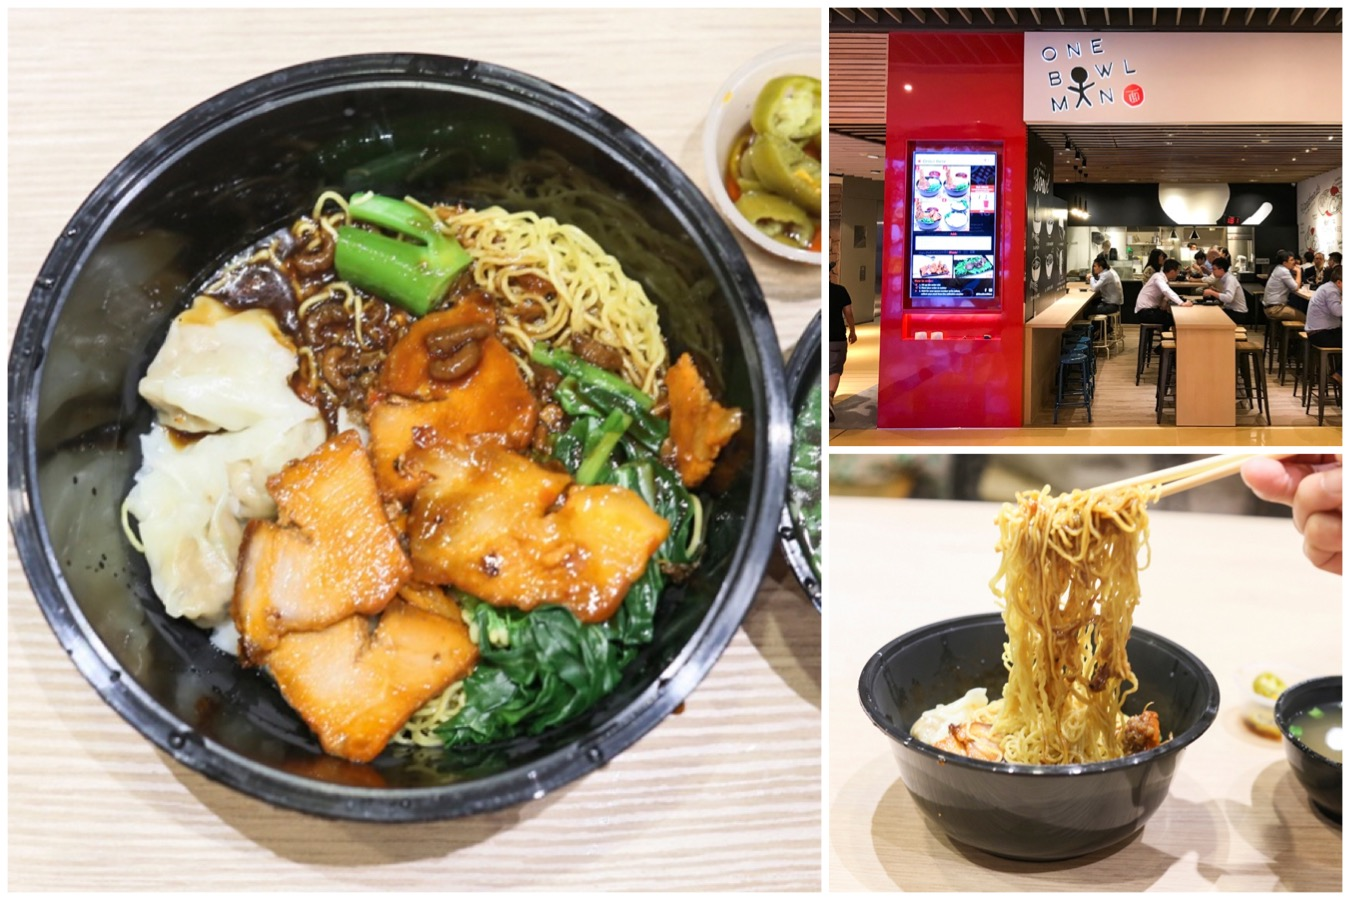 One Bowl Man – Modern Style Wanton Noodles With XO Sauce, At Marina Bay Link Mall